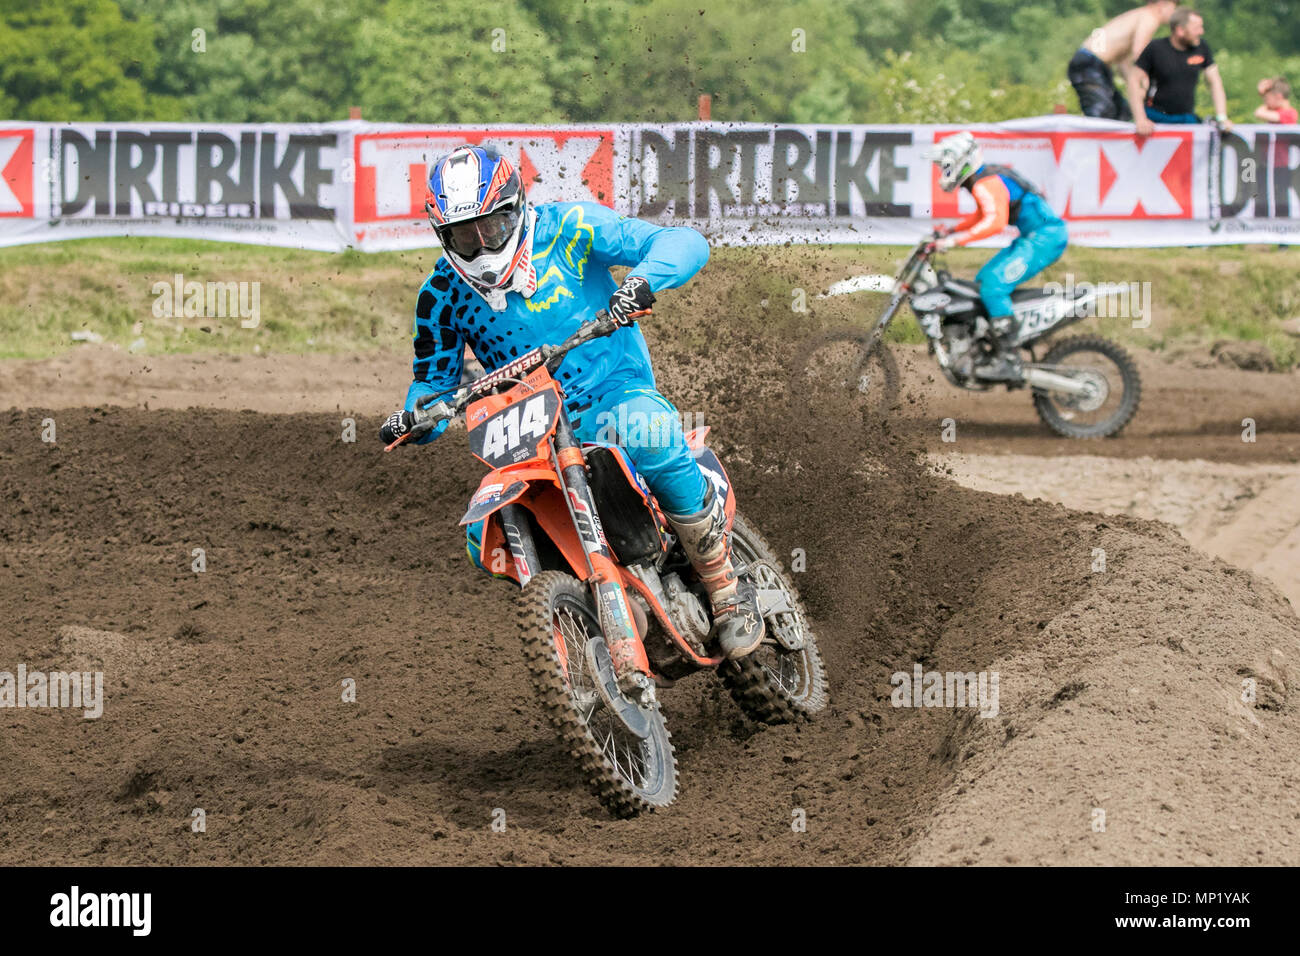 Preston Docks, Lancashire. 20th May 2018.  The cream of British Motocross talent will be taking to the circuit at Preston Docks in Lancashire for the Michelin MX Nationals. The 'Nationals' offers a whole weekend of racing with 26 races over two days, and classes catering for SW/BW 85, MXY1 and 2, MX1 and MX2 Clubman right through to the Pro MX1 and MX2 'Fastest 40'; the stage is set for an action-packed programme of British championship racing at the very top of its game.  Credit: Cernan Elias/Alamy Live News - Stock Image